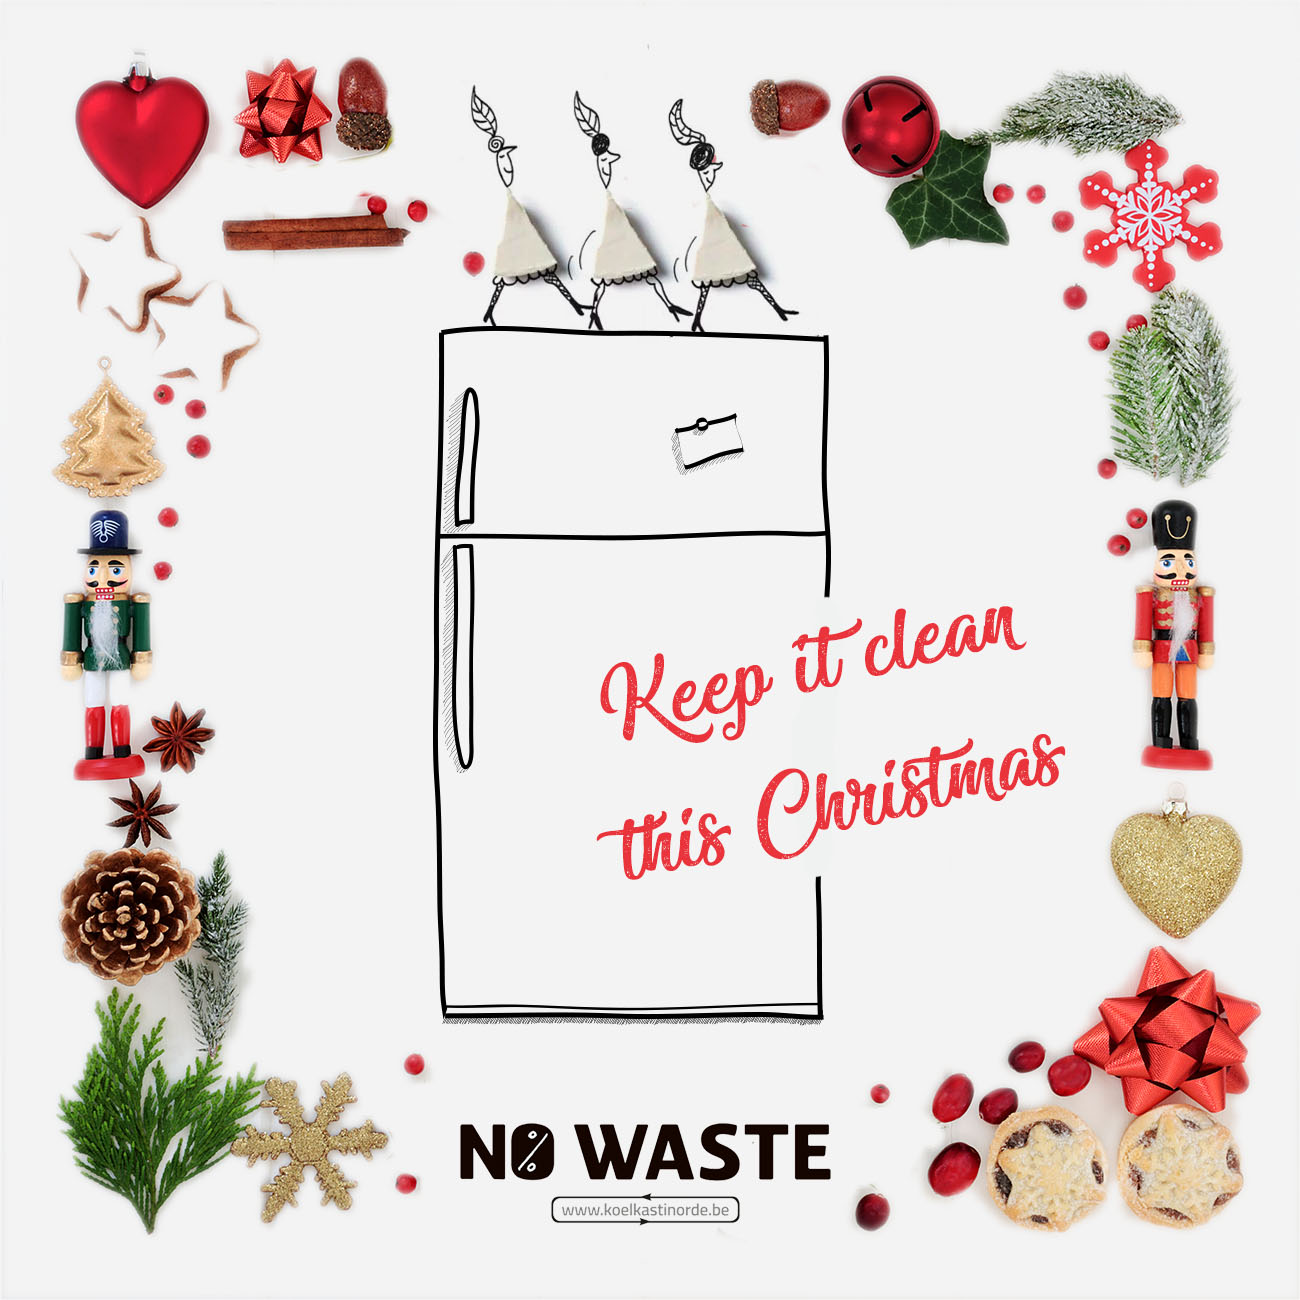 Empty the Fridge - Keep it clean this Christmas